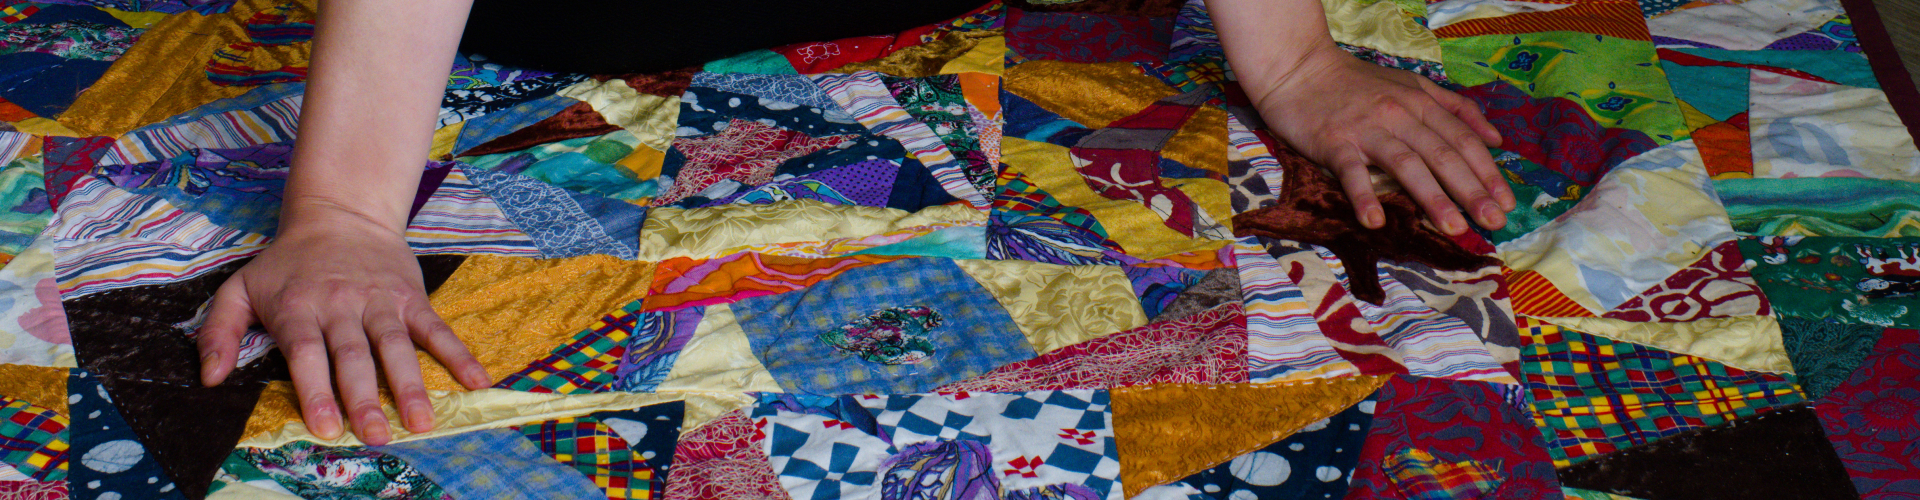 Picknick scrap quilt made by rianne of kick ass quilts